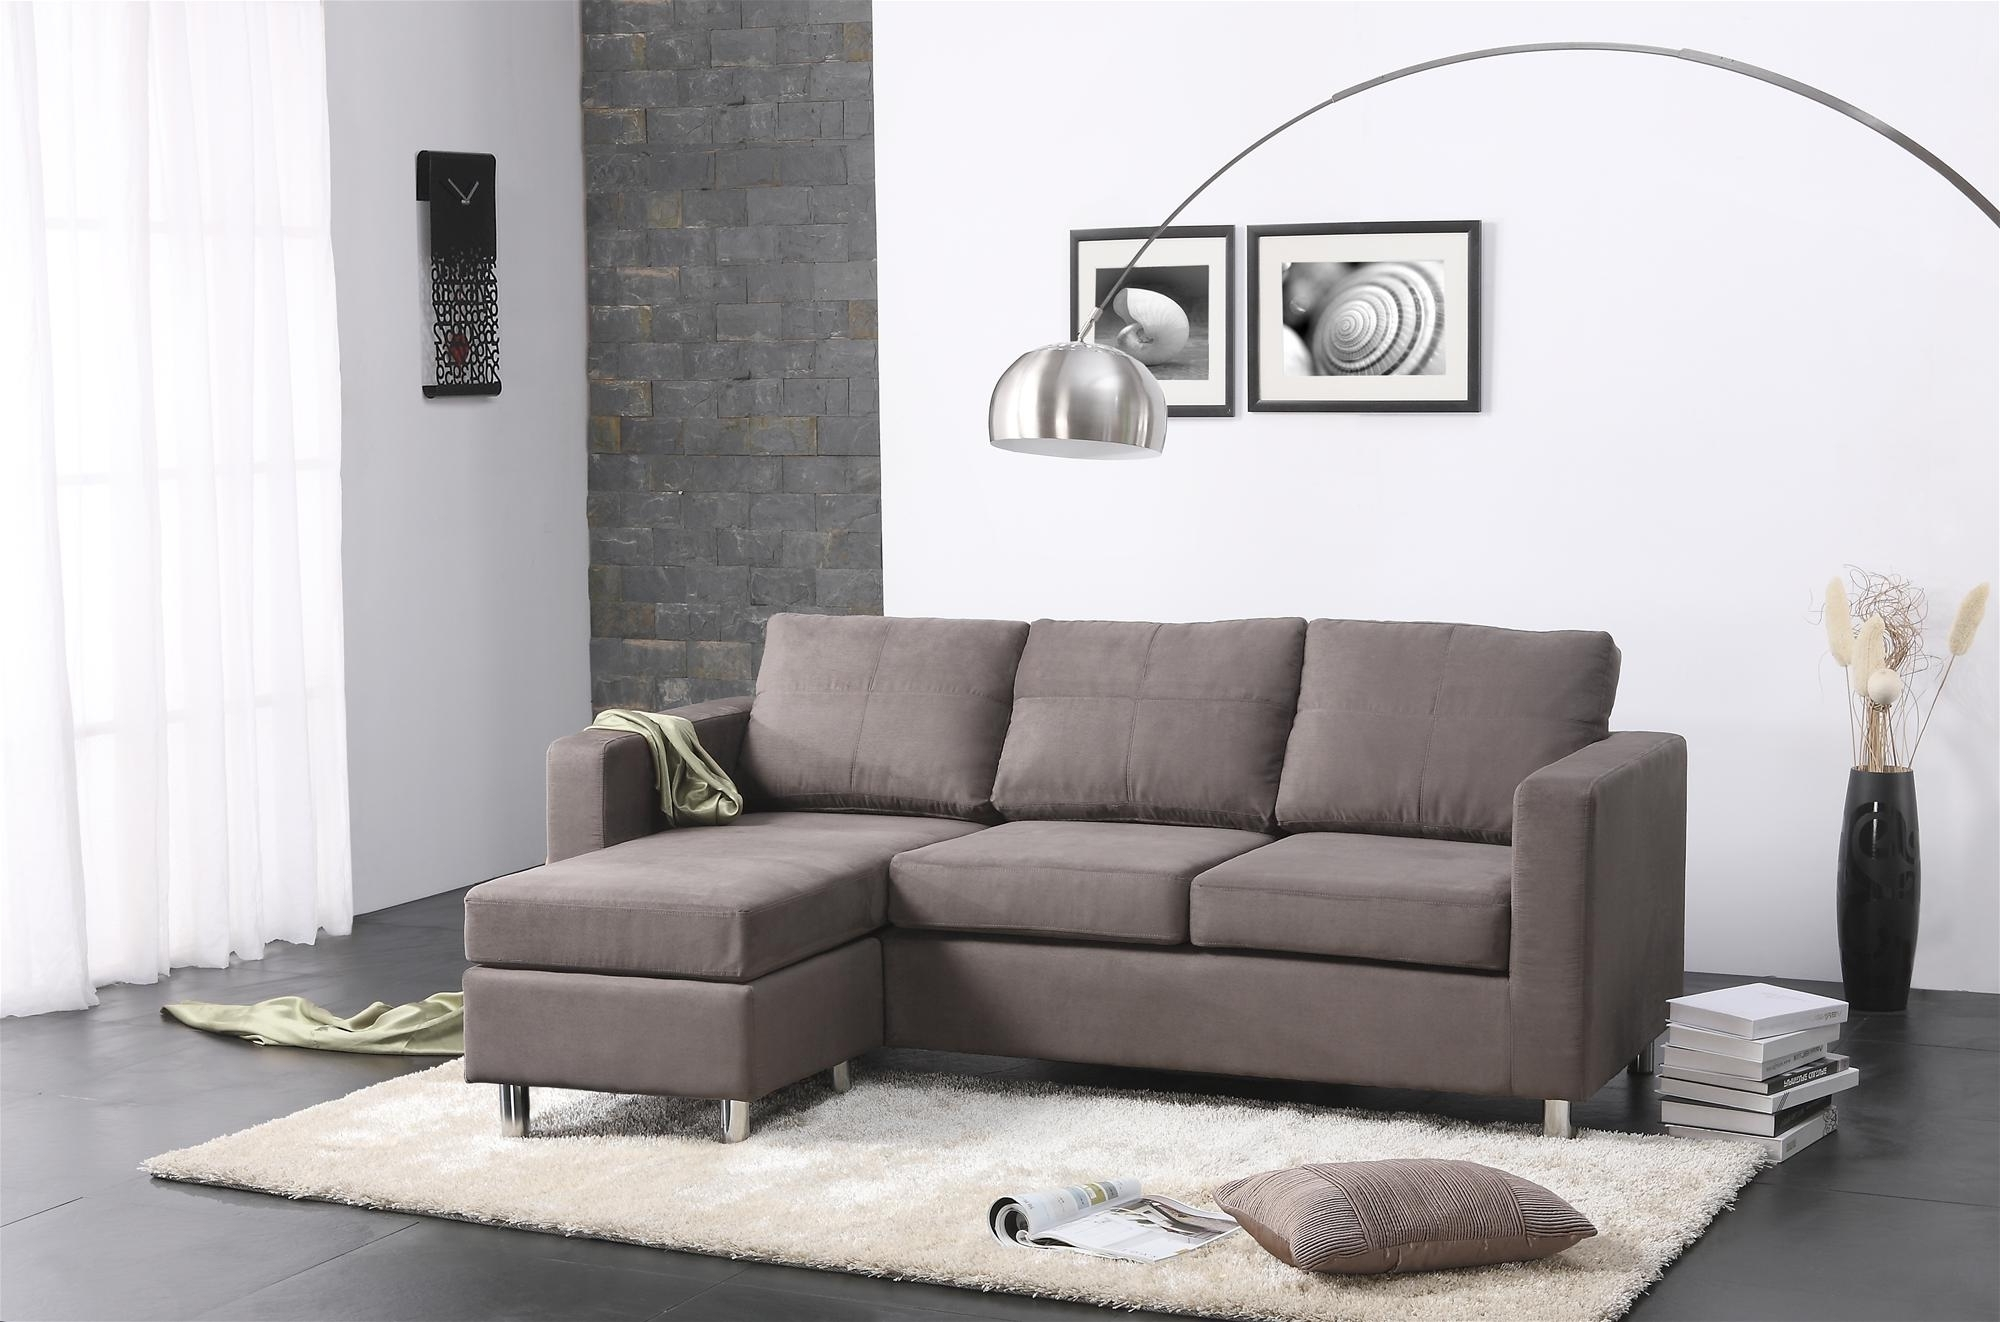 Sofa : Small Sofas For Small Spaces Tiny Sleeper Sofa Retro Sofa Inside 2018 Sectional Sofas For Small Areas (Gallery 8 of 20)